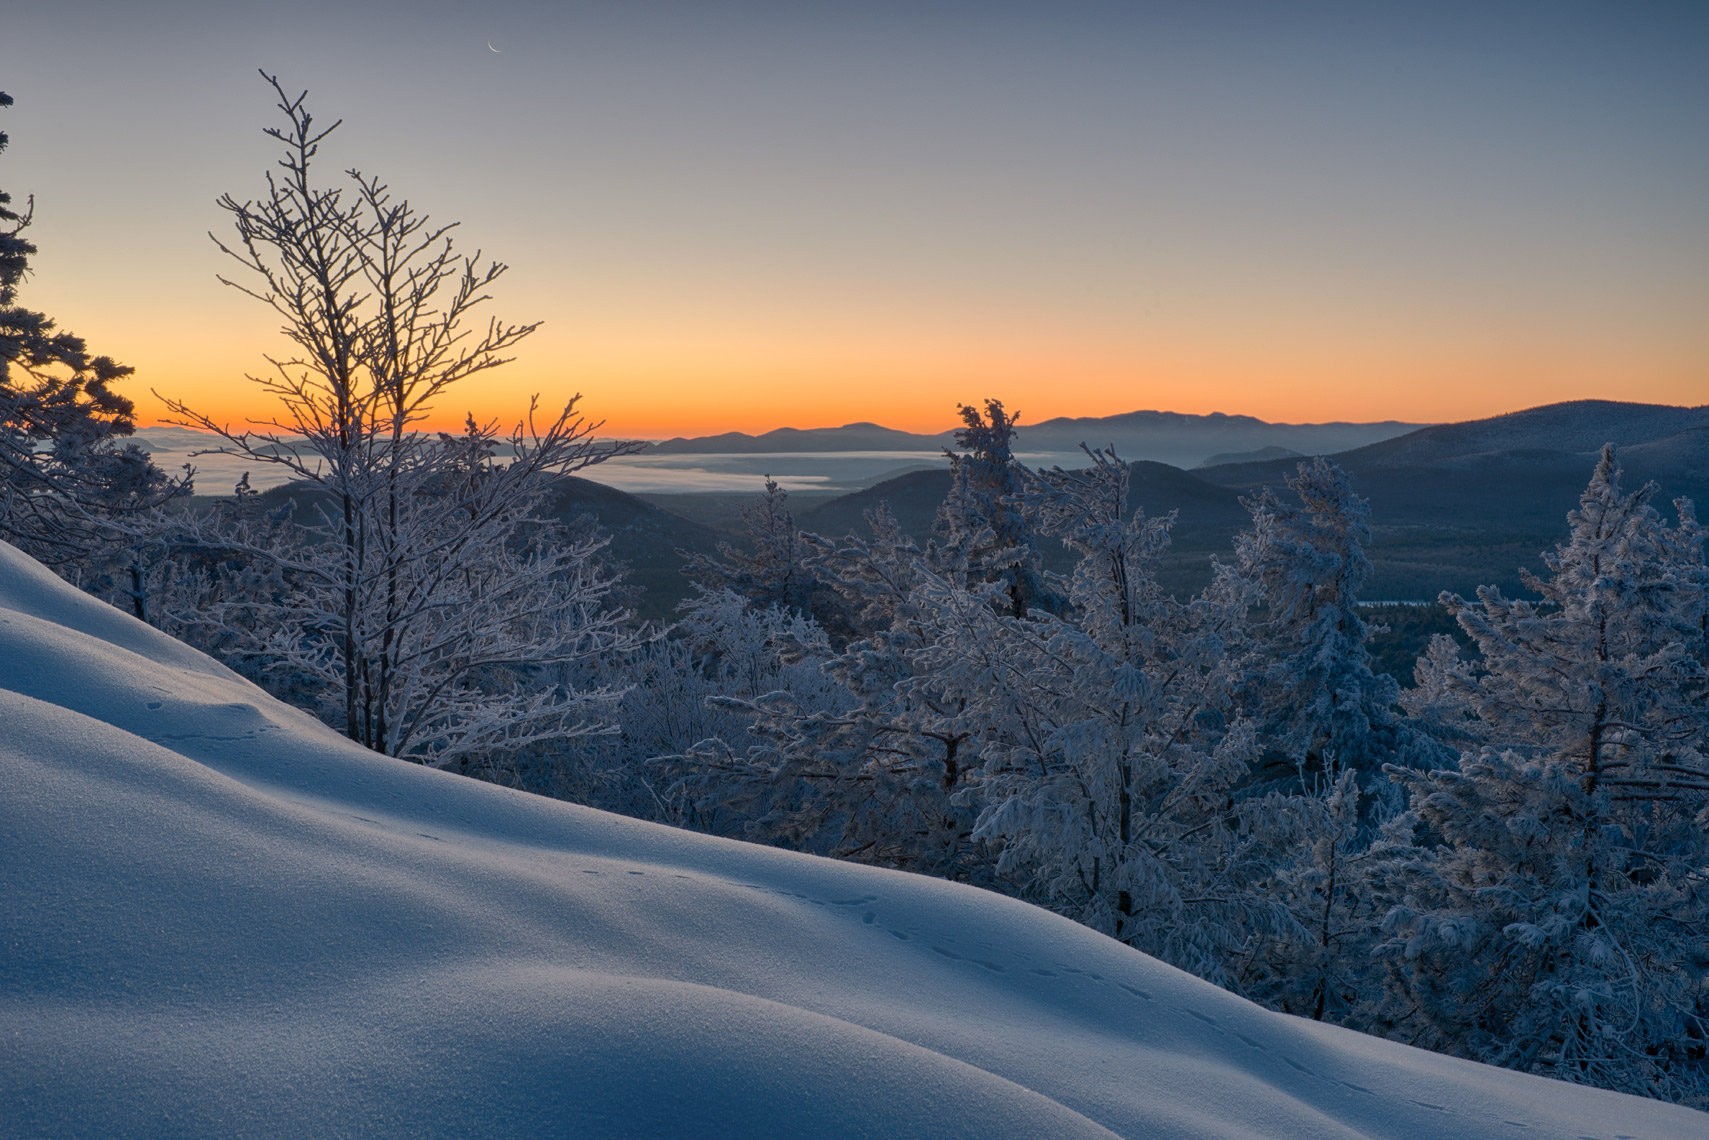 Winter Sunrise on Silver Lake Mountain, Adirondack Mountains, New York State